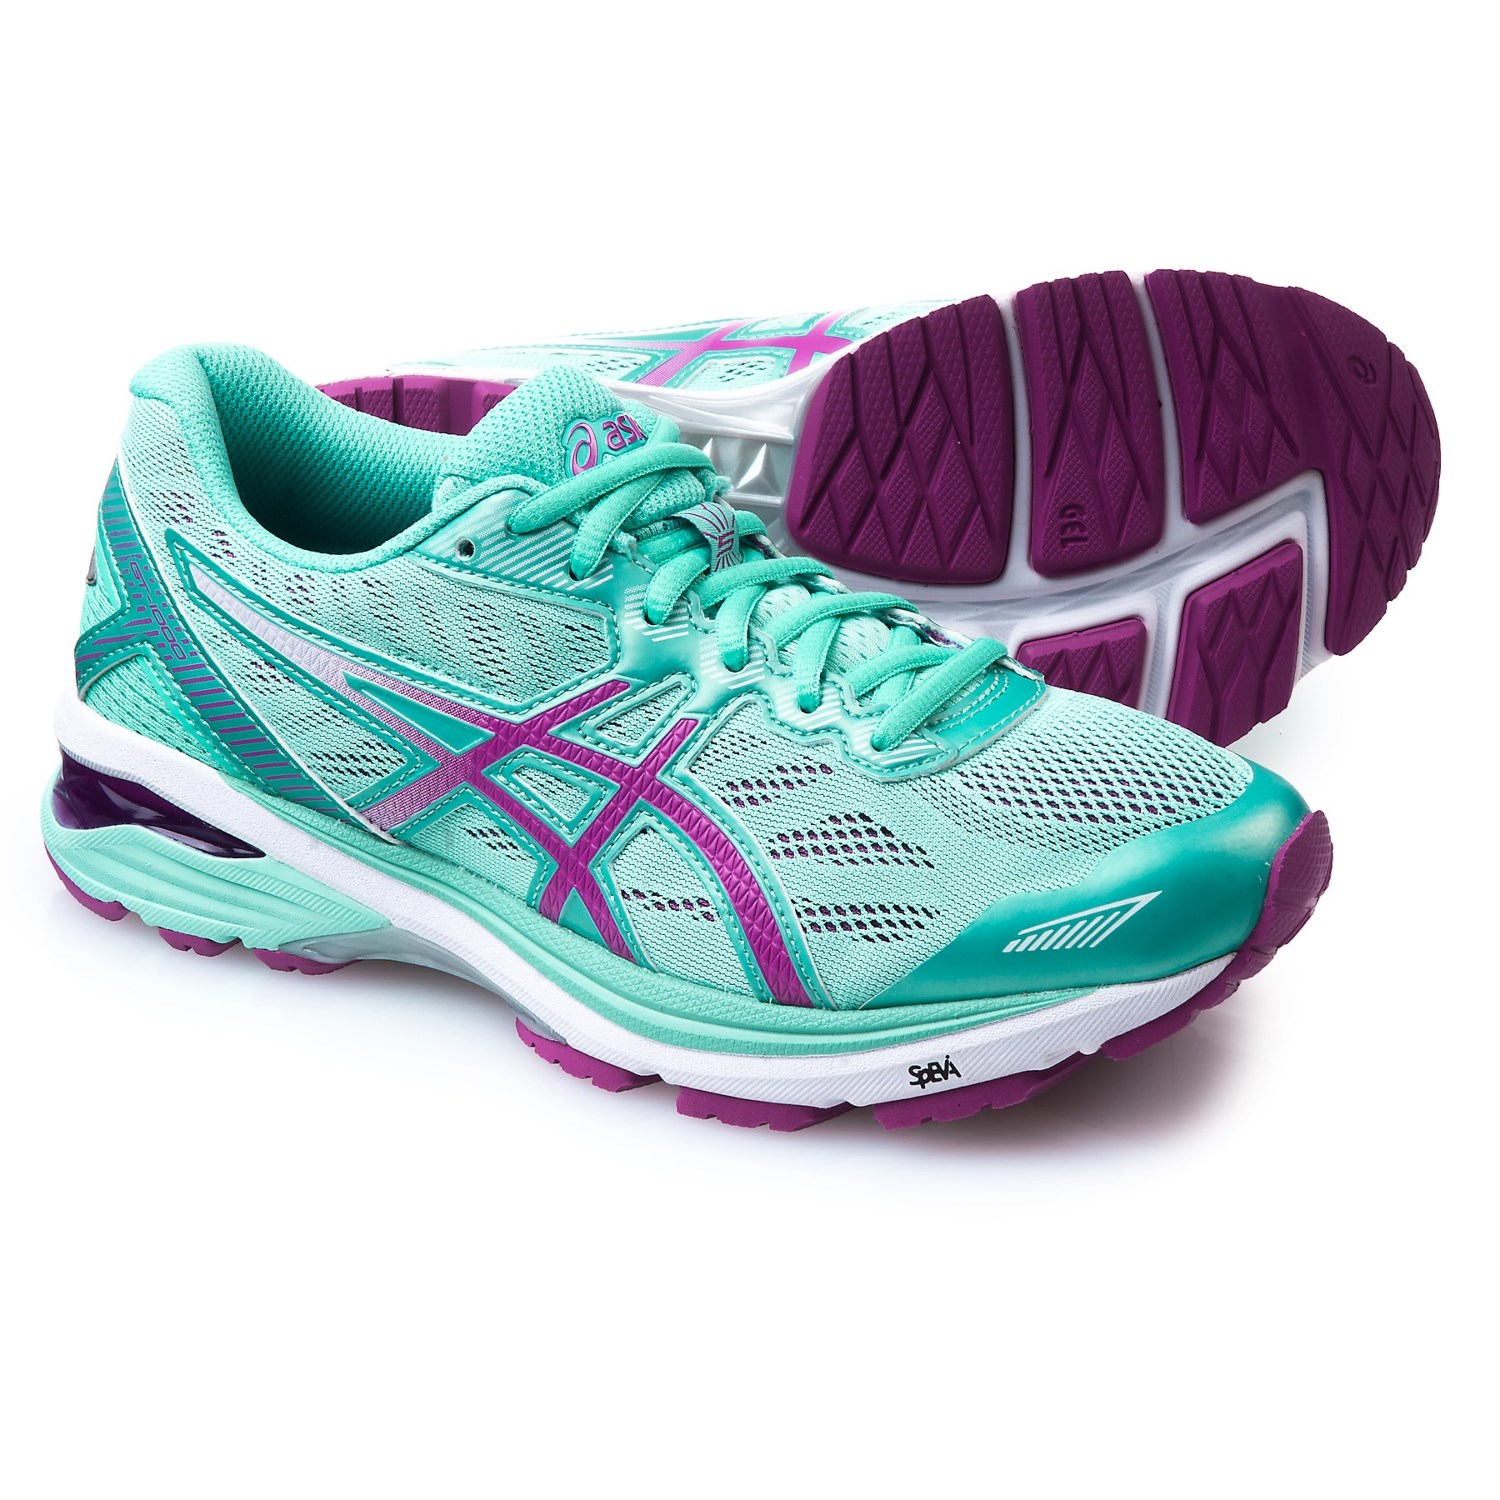 ASICS GT-1000 5 Running Shoes (For Women) in Mint/Orchid/